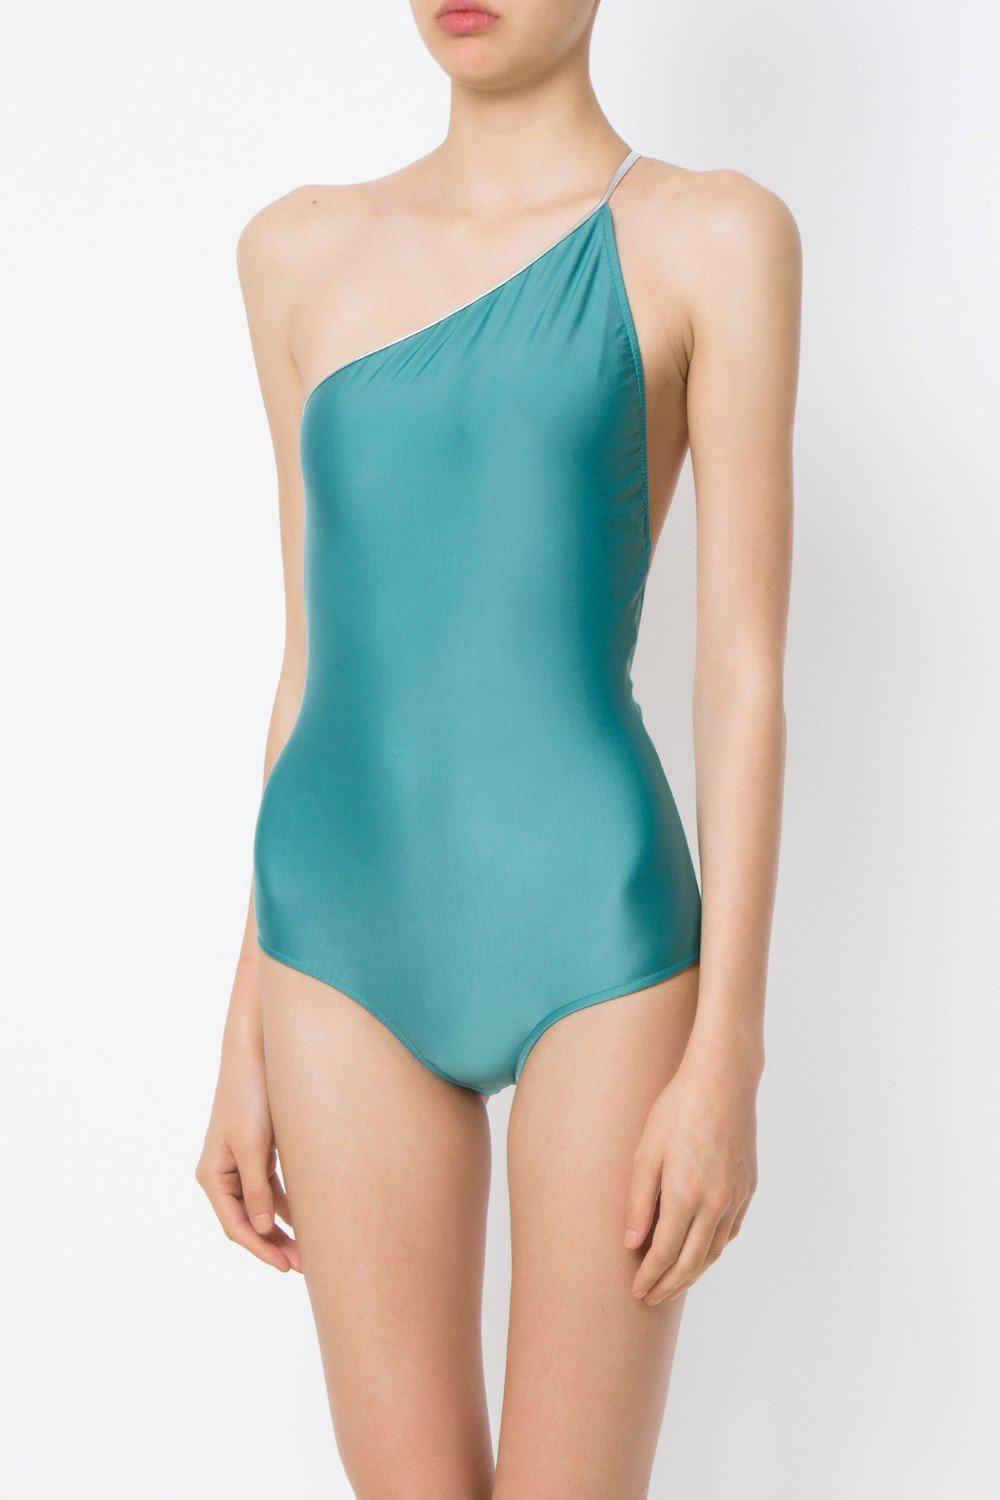 Arara One Shoulder Swimsuit with Silver Ties 0